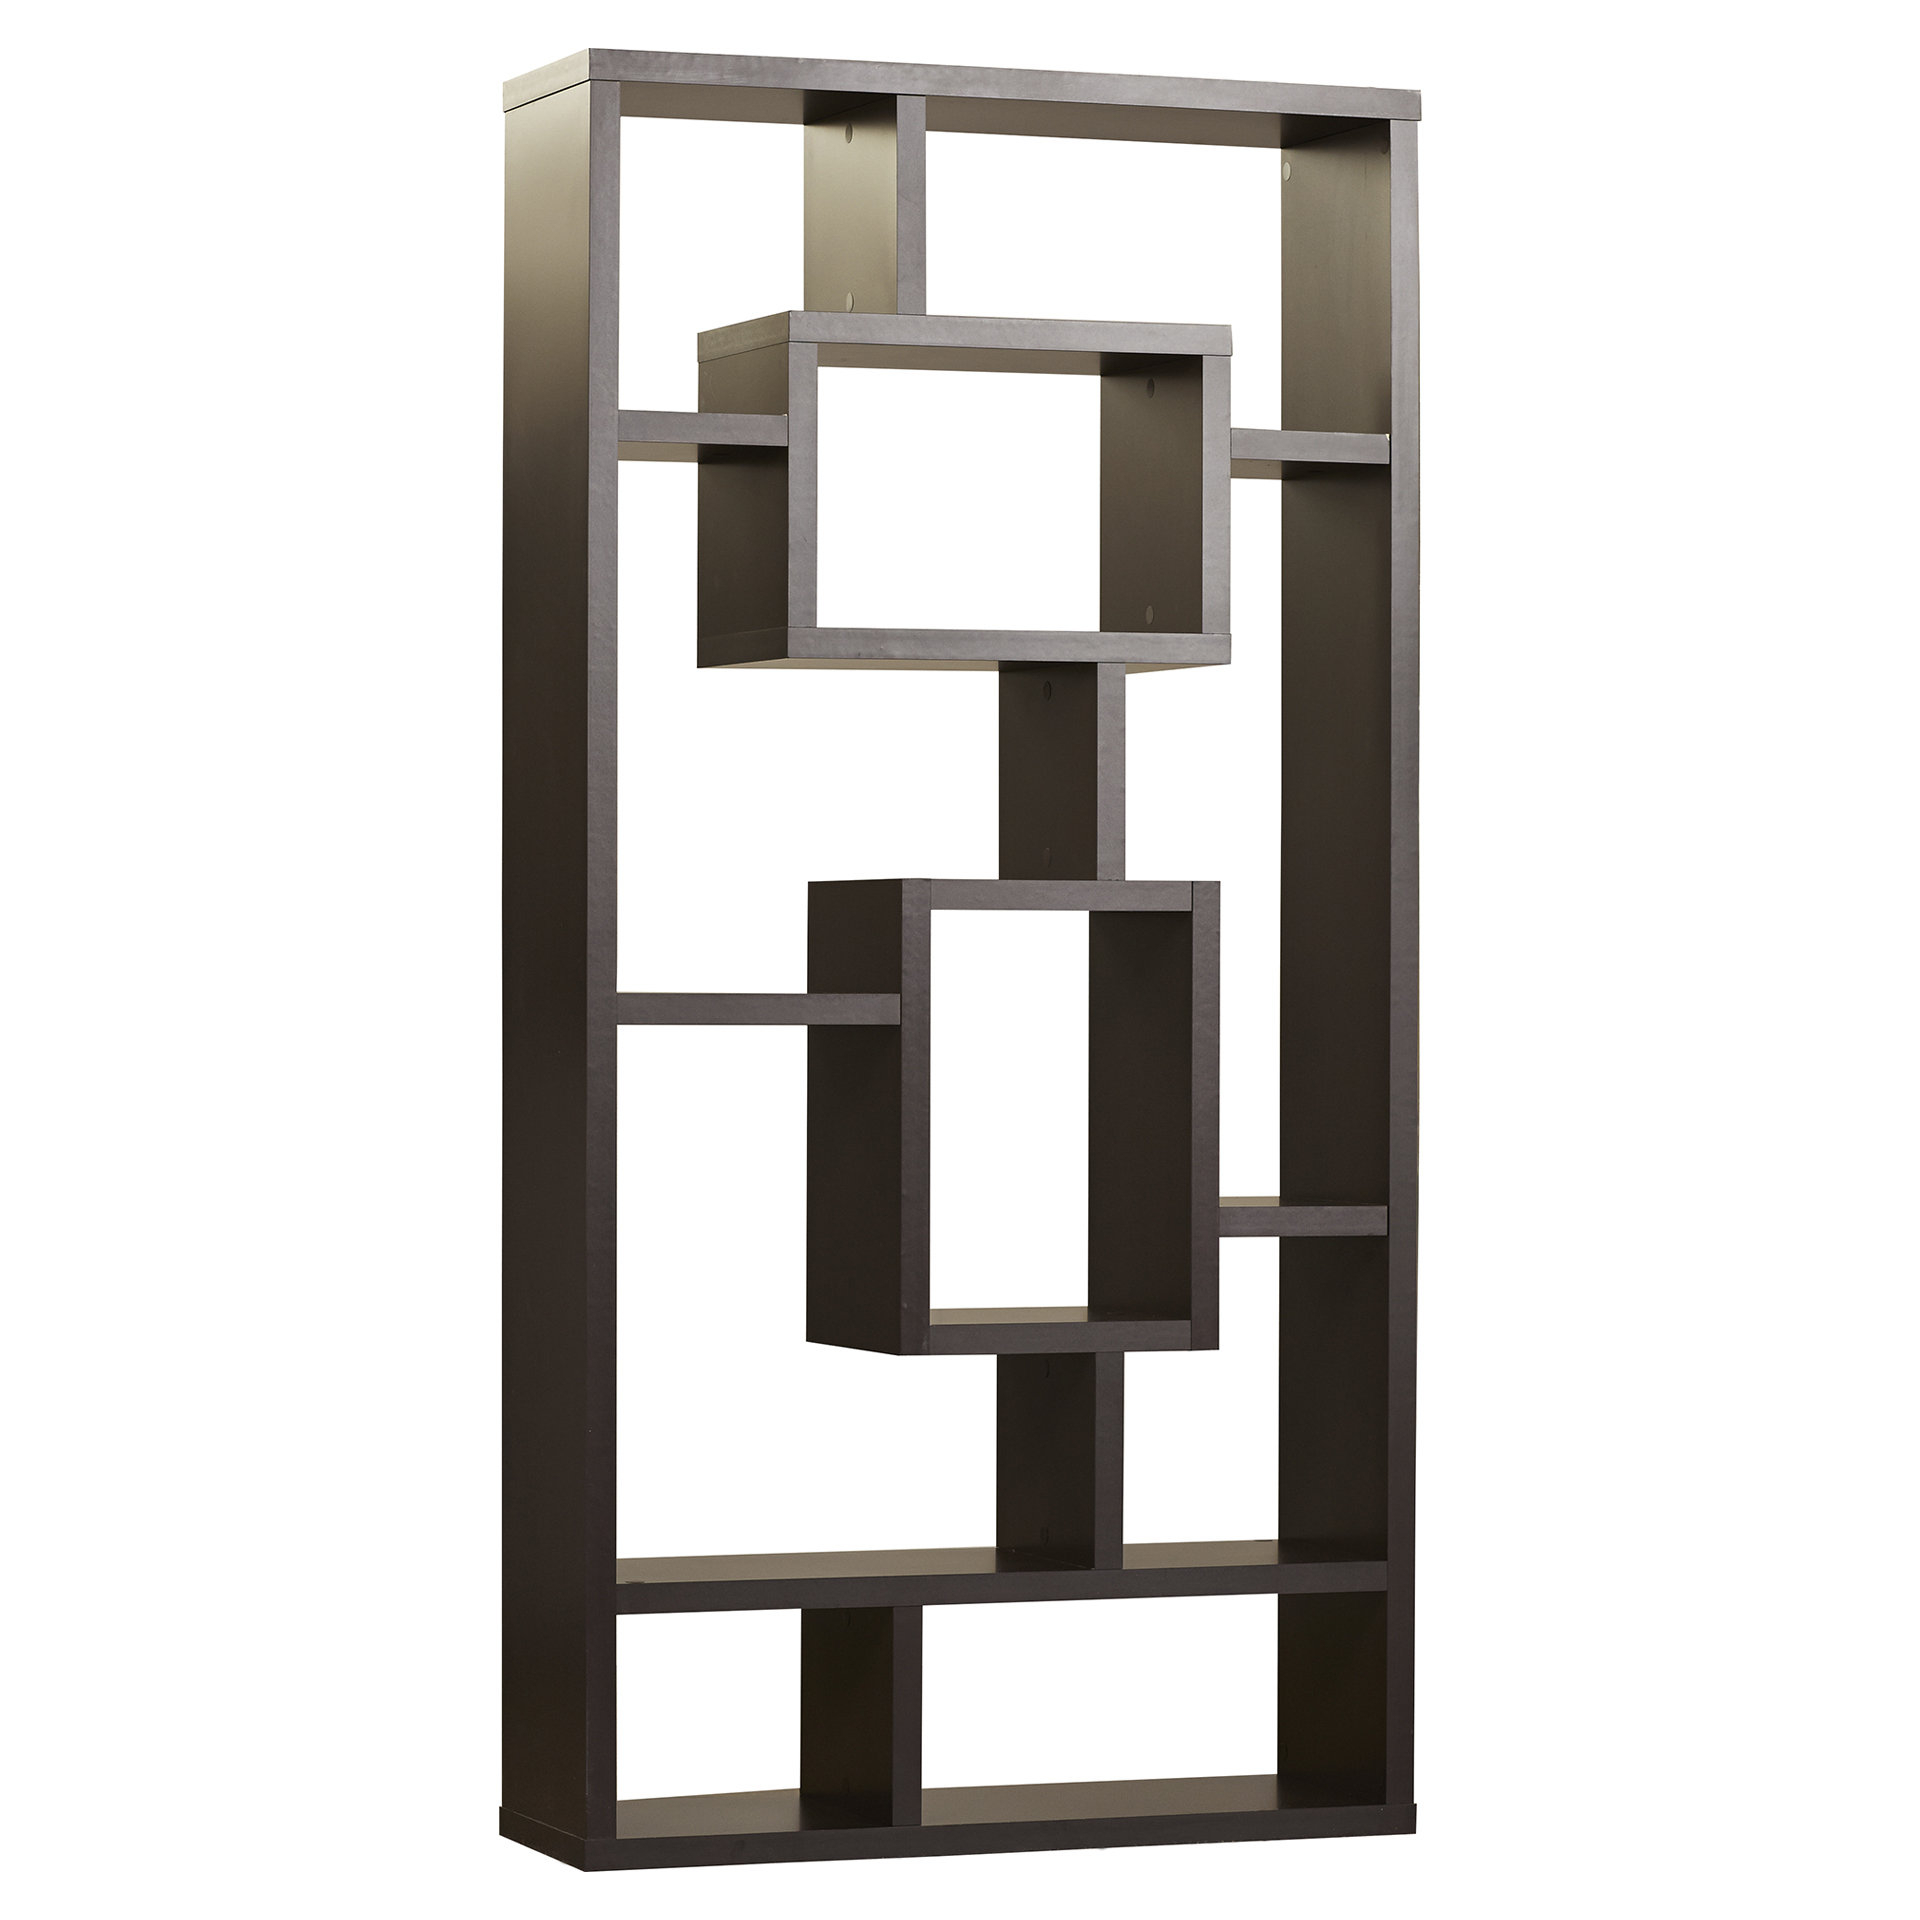 Tinoco Storage Shelf Standard Bookcases Throughout Favorite Easmor Etagere Bookcase (View 16 of 20)